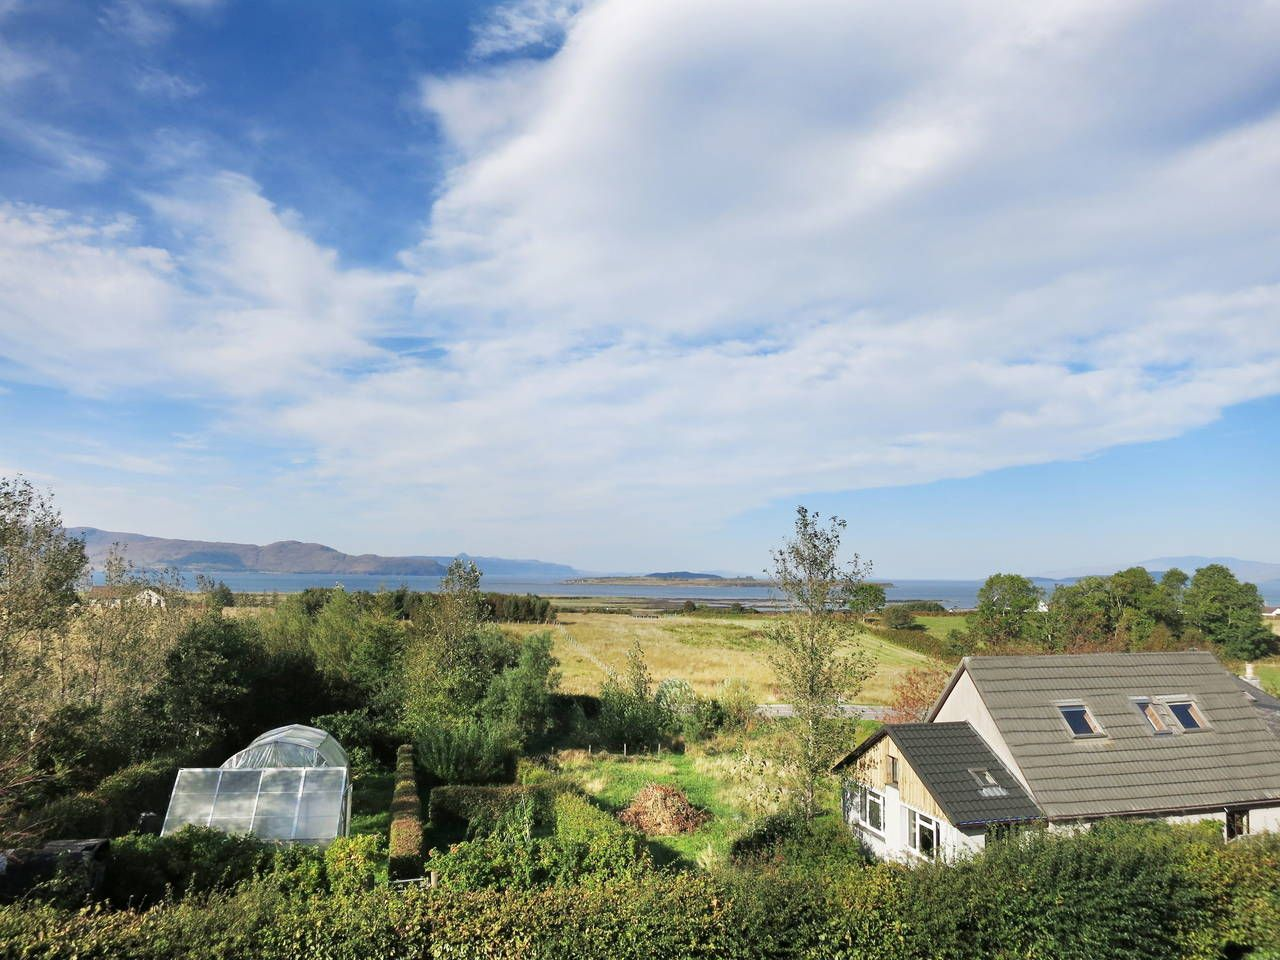 Our cottage has open views to the sea and seven islands. it can sleep up to 6 people.